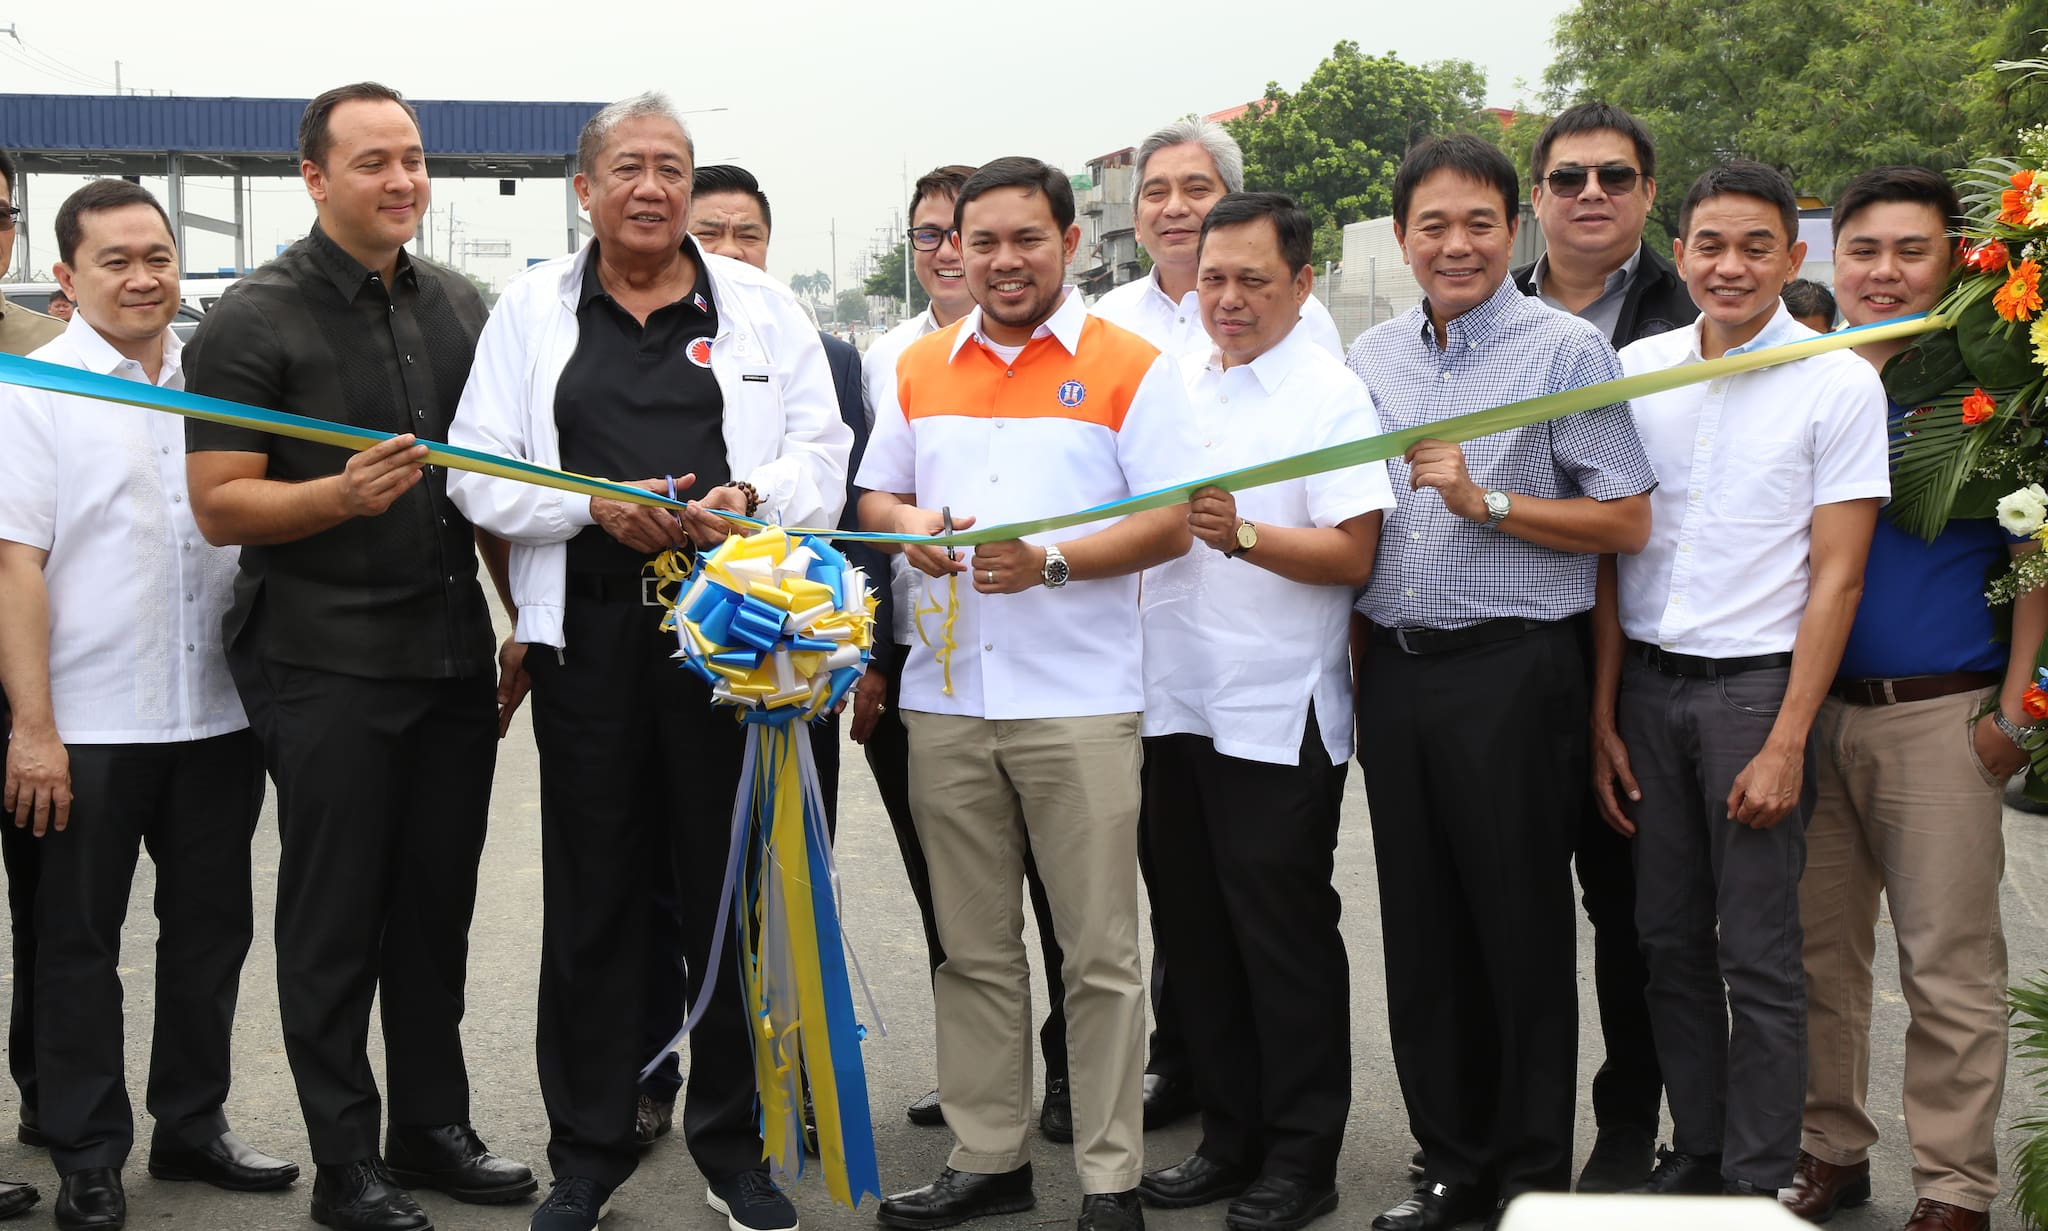 DPWH Opens First Section of Cavitex C5 South Link